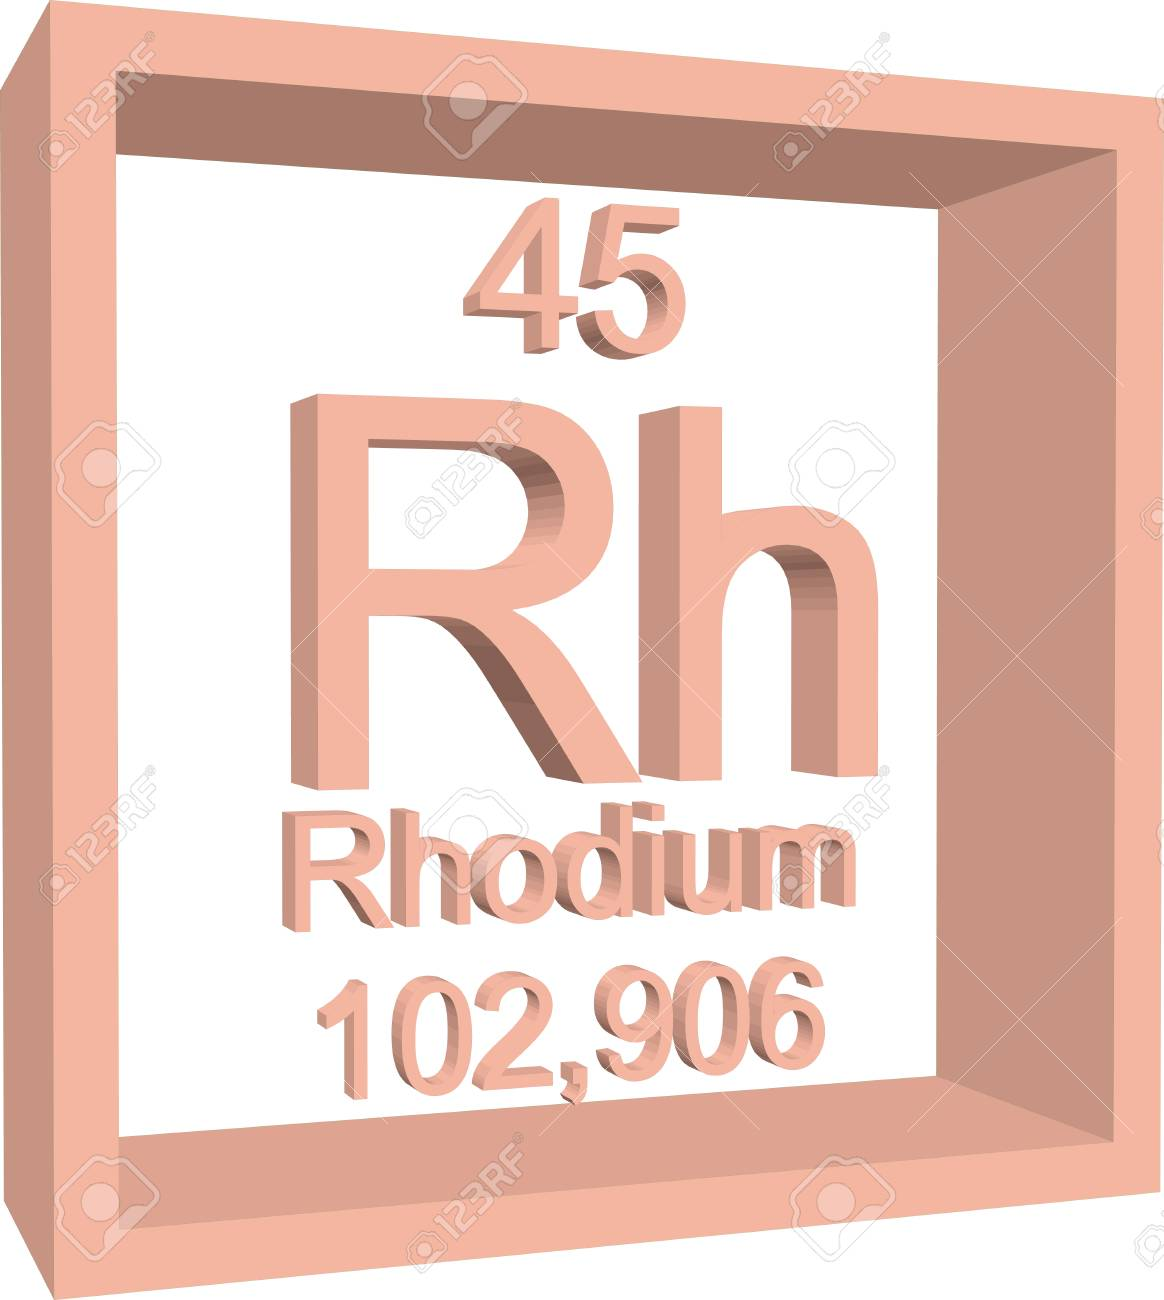 Periodic table of elements rhodium royalty free cliparts periodic table of elements rhodium stock vector 57971857 gamestrikefo Image collections